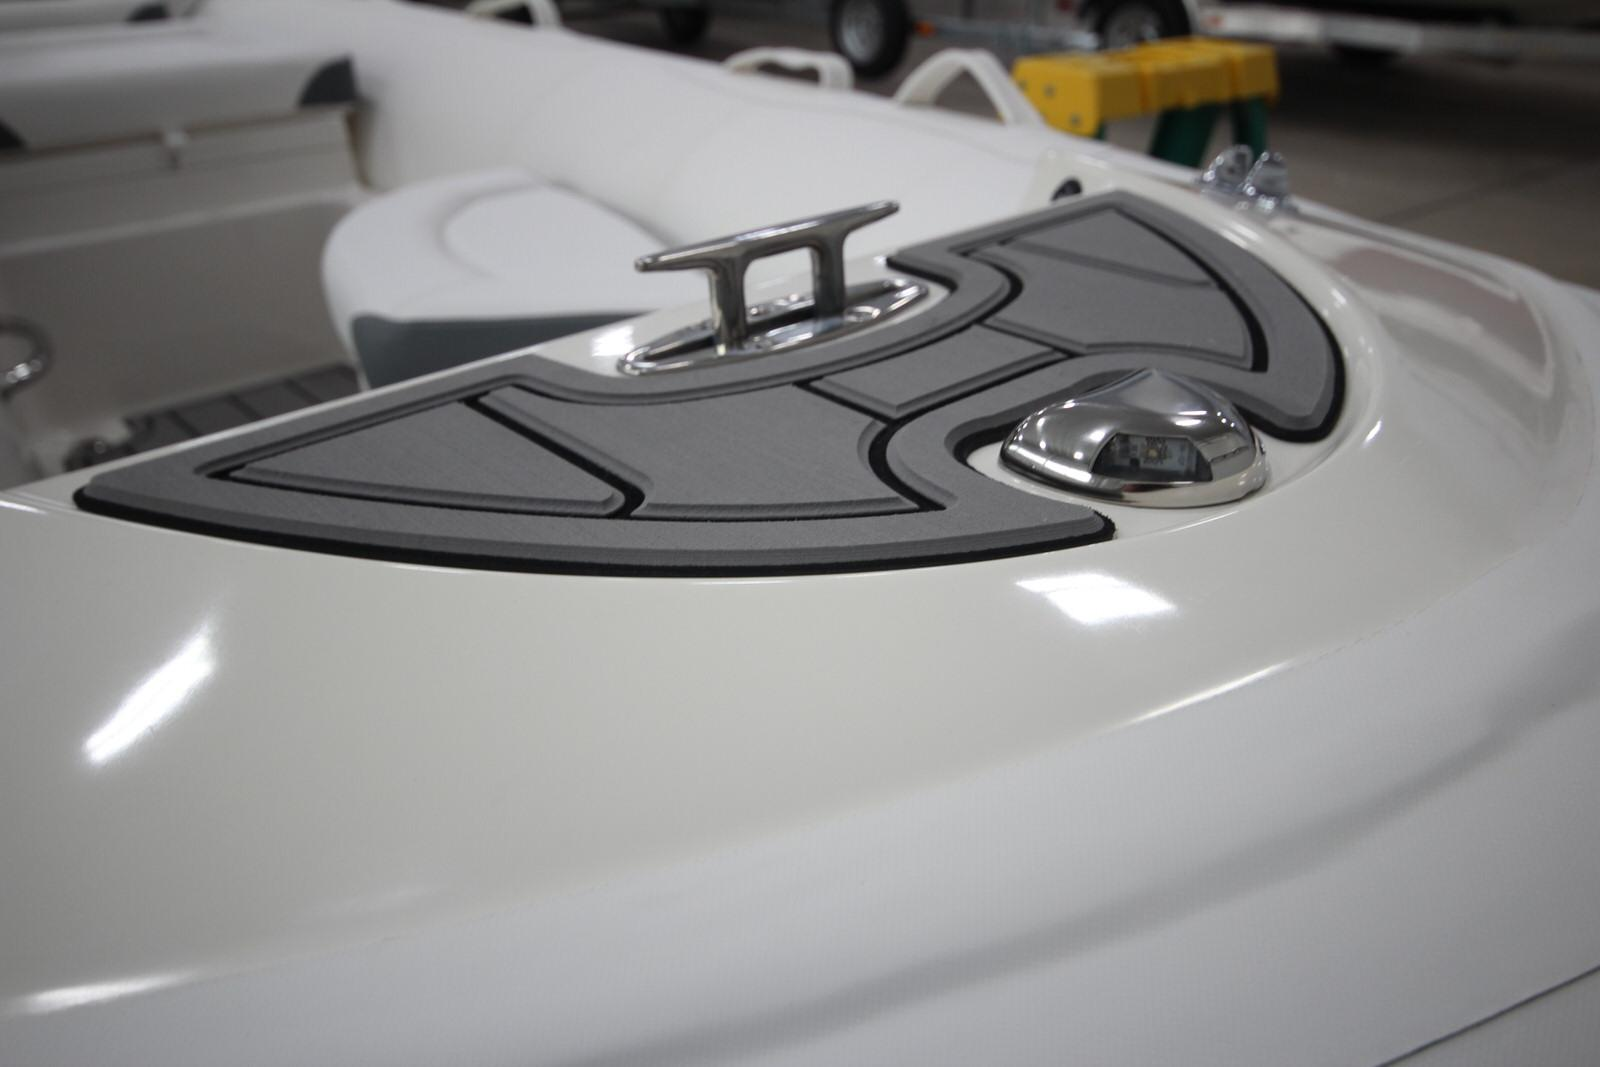 2022 Zodiac Yachtline 440 Deluxe NEO GL Edition 60hp On Order, Image 27